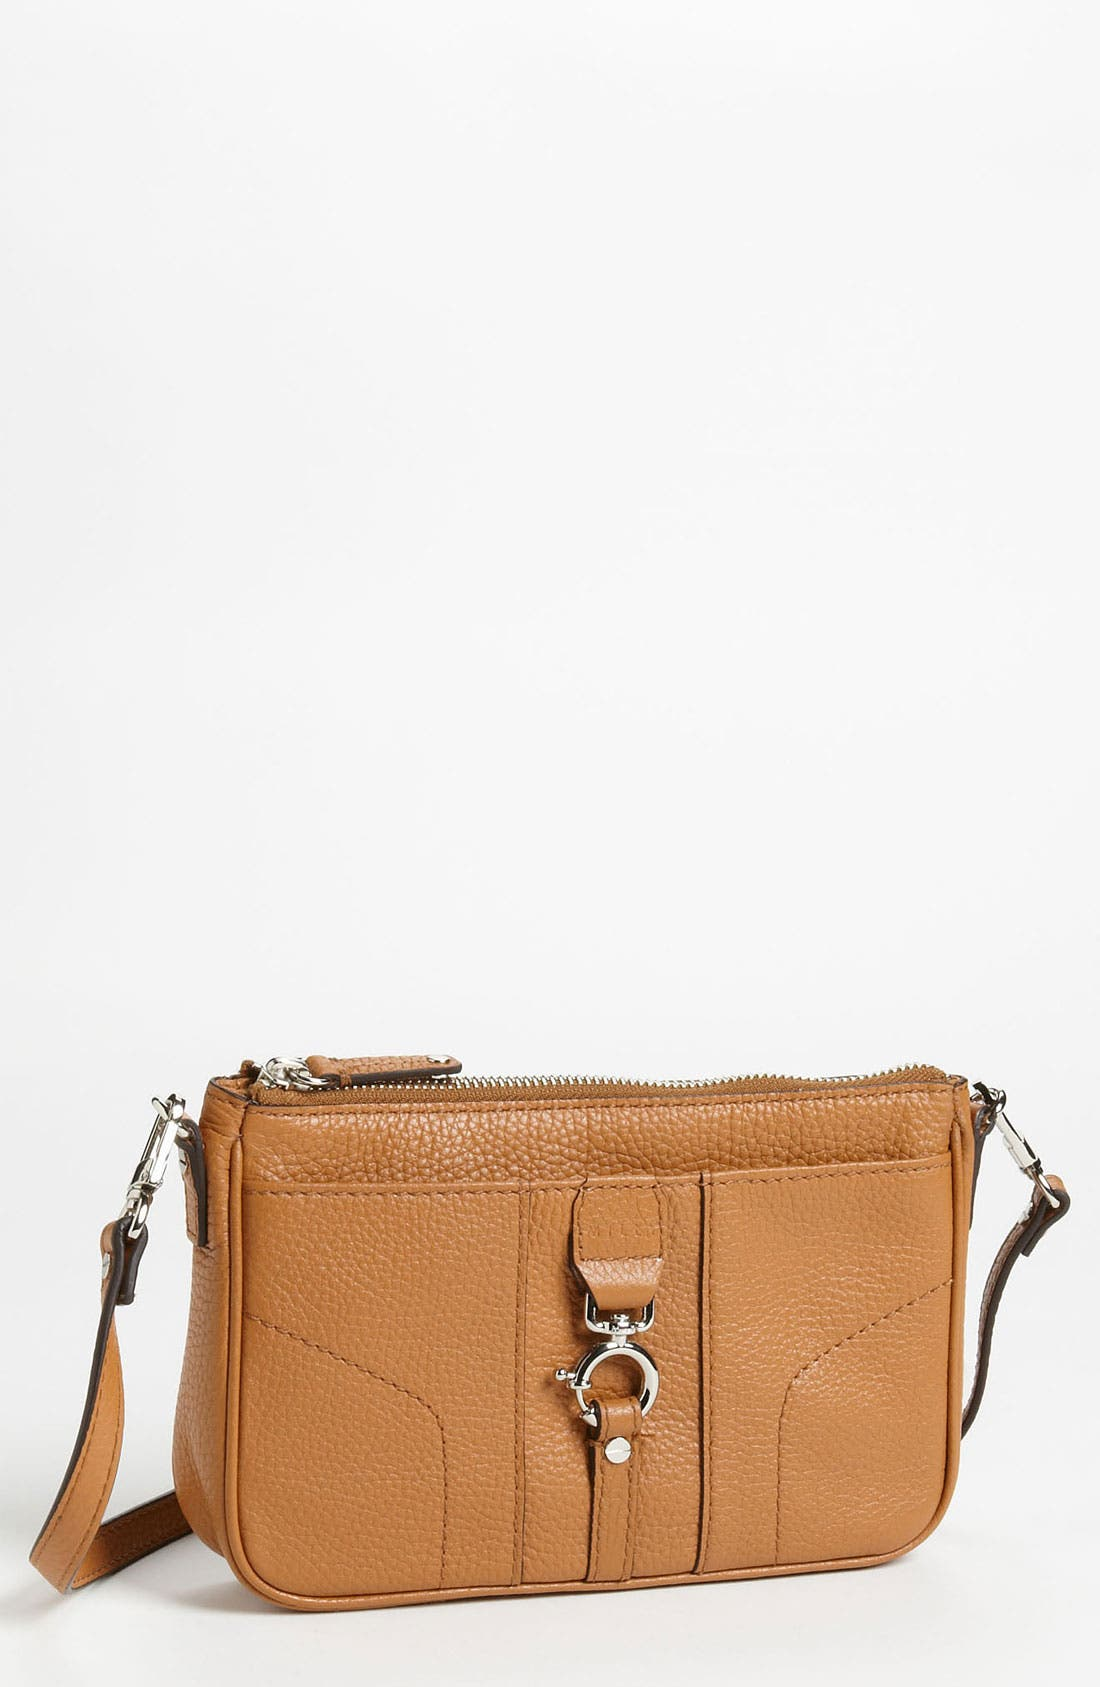 Alternate Image 1 Selected - Milly 'Felicity' Crossbody Bag